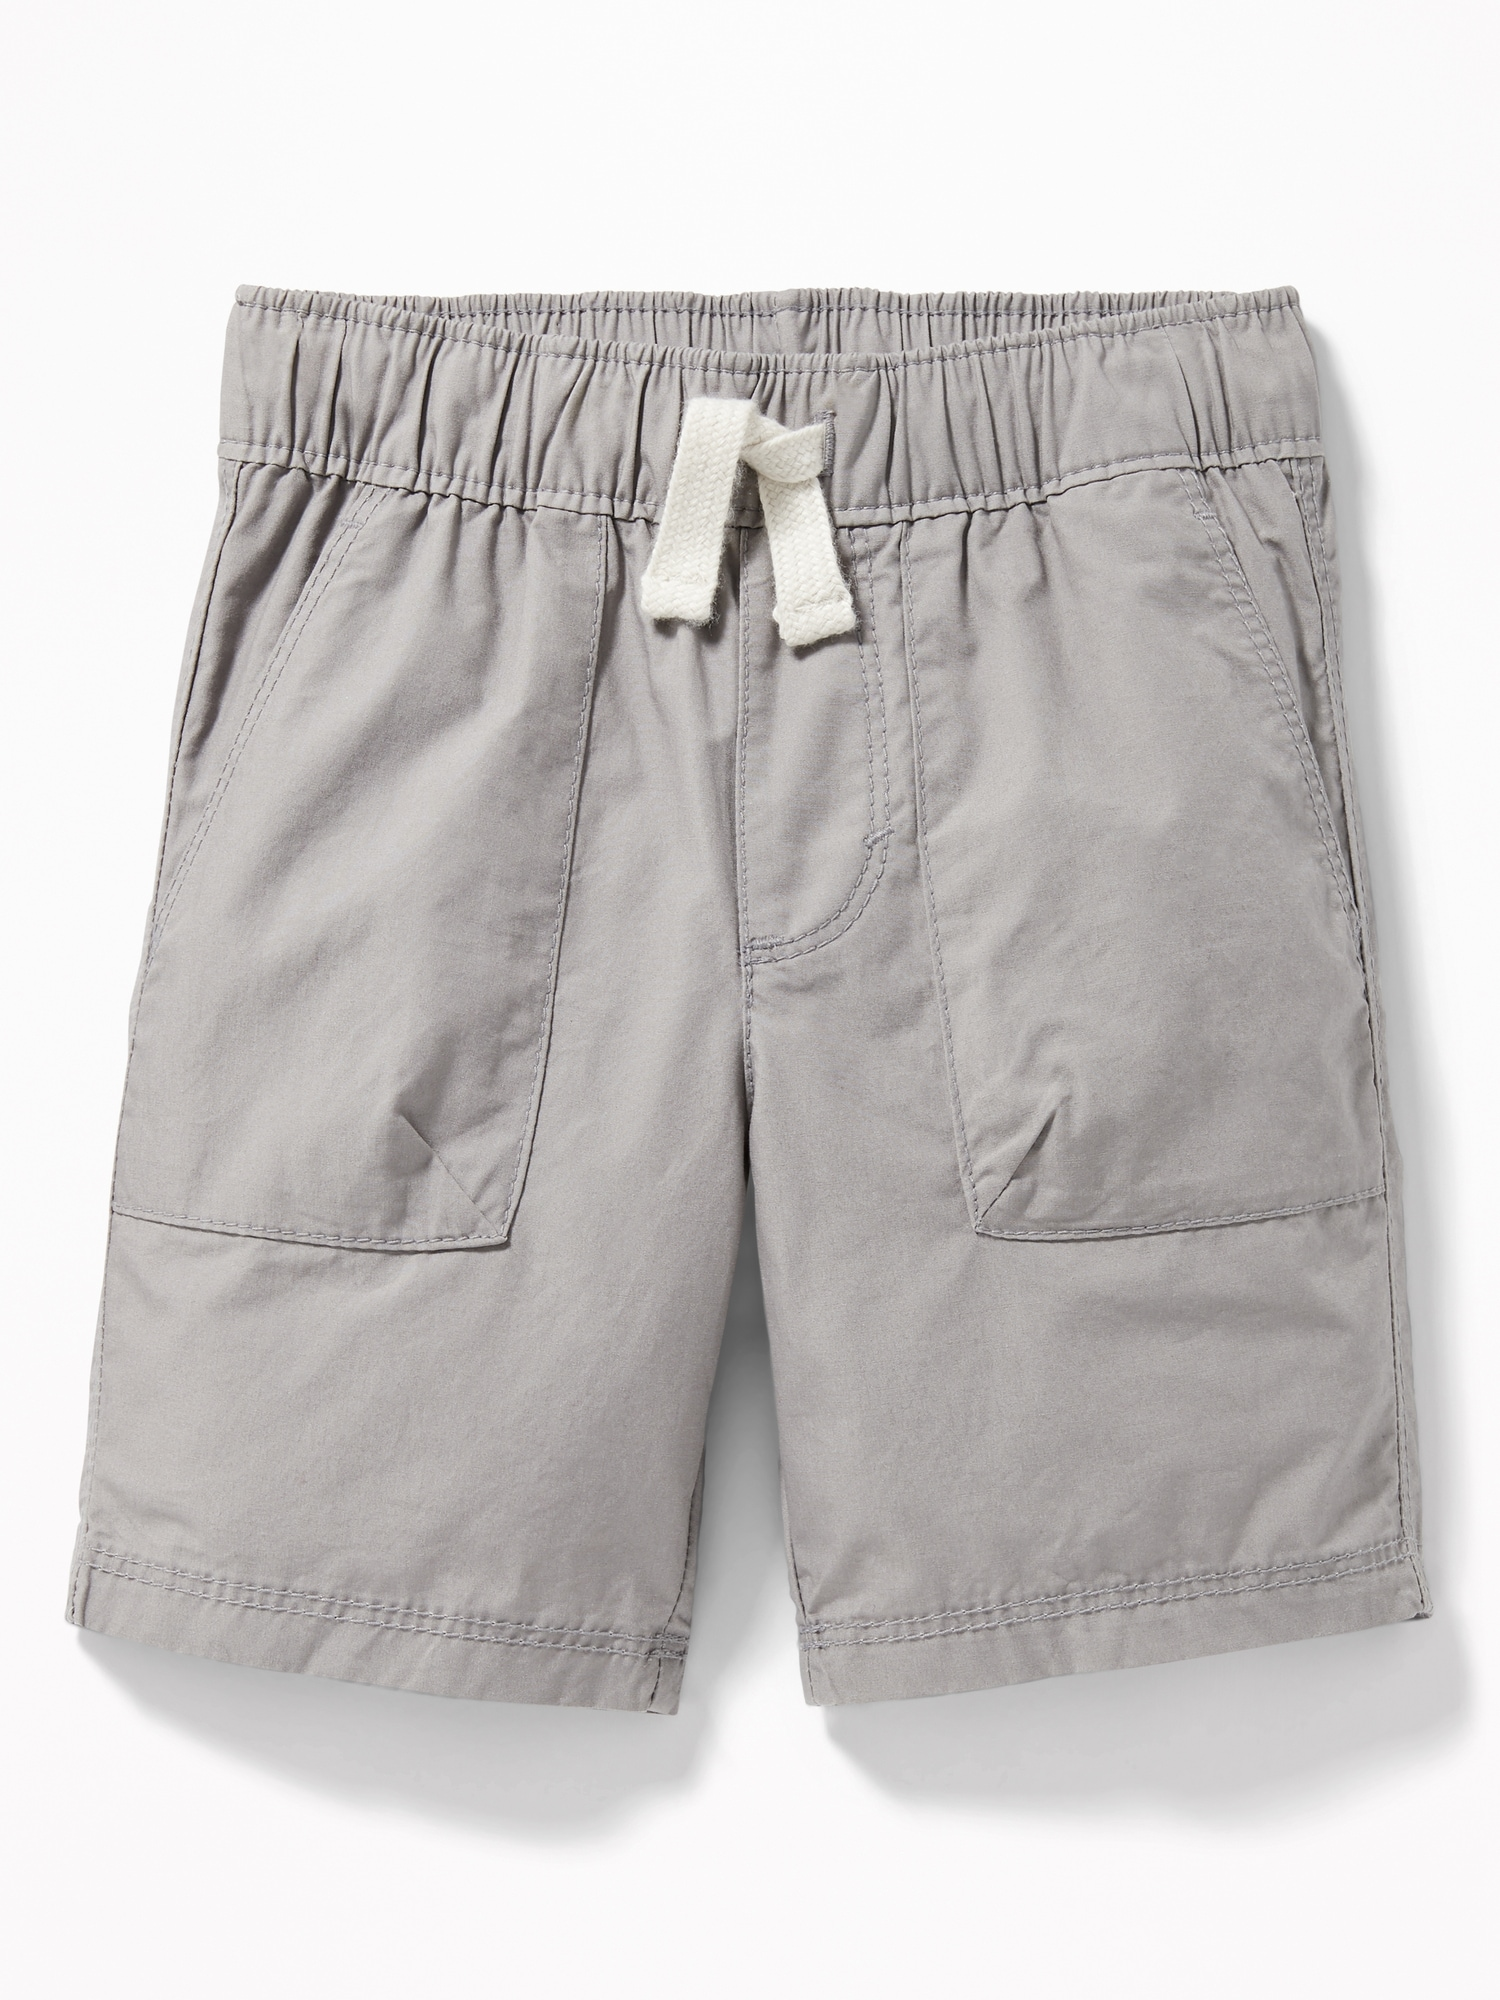 Clearance Sale Old Navy Jersey Drawstring Shorts for Baby Boys!